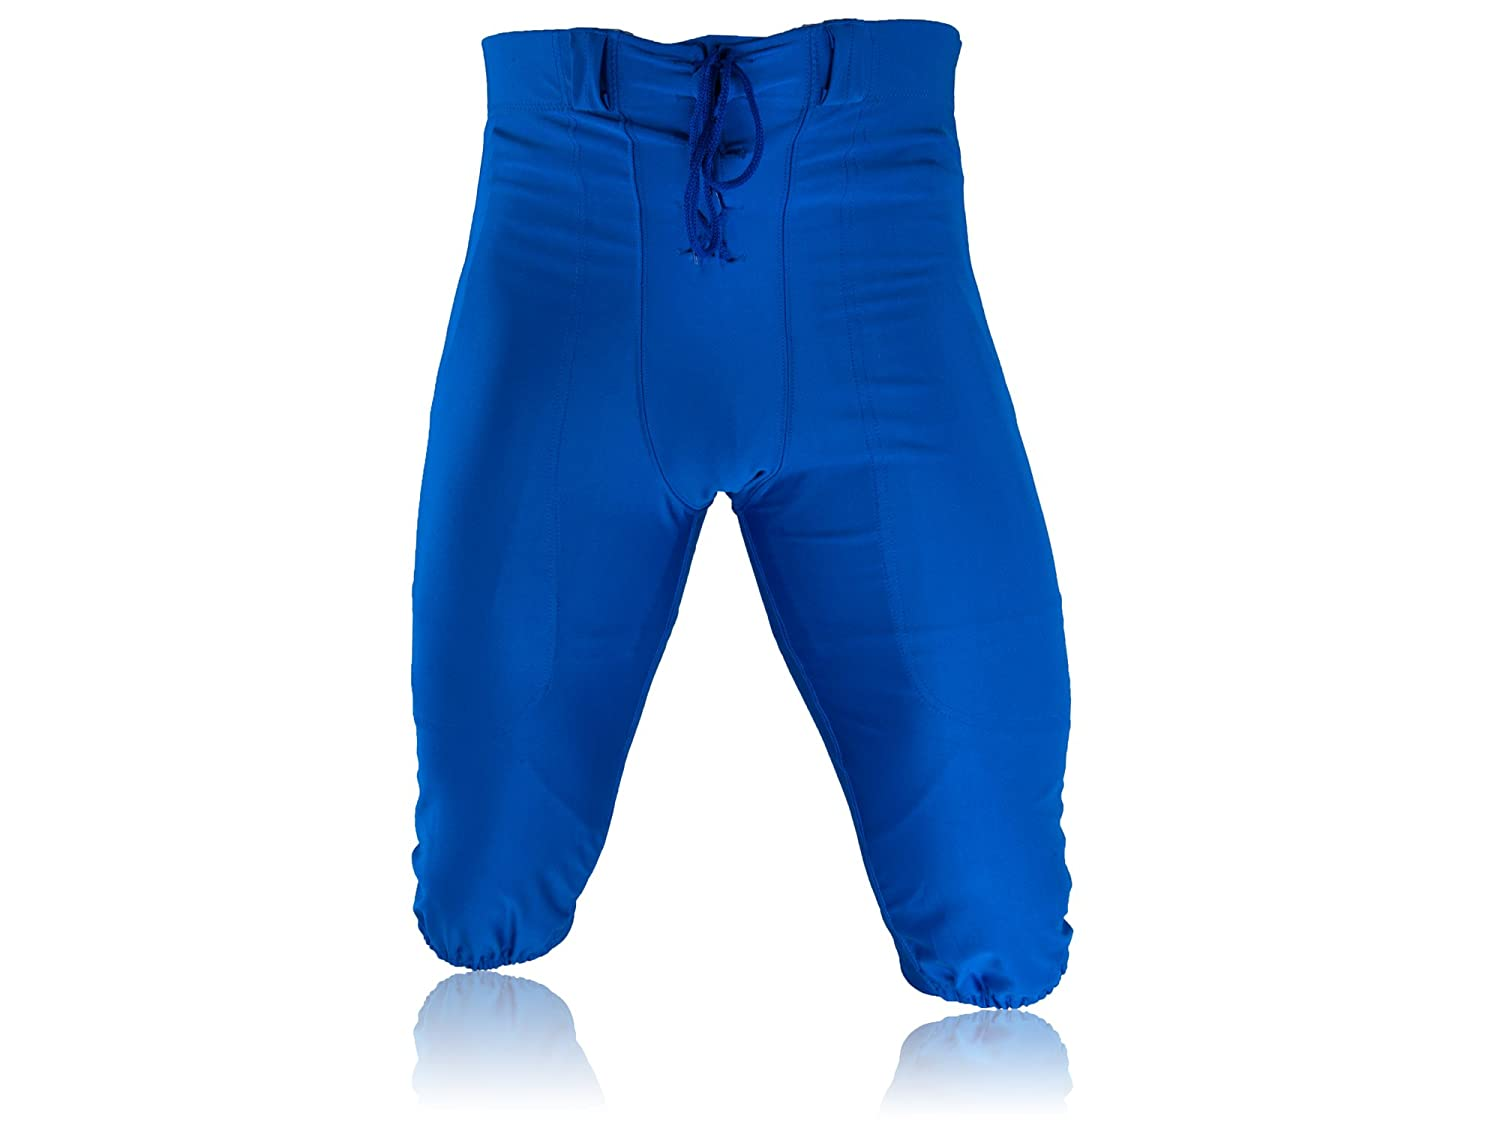 Full Force American Football Game Pants Lycra Stretch - Royal Full Force Wear